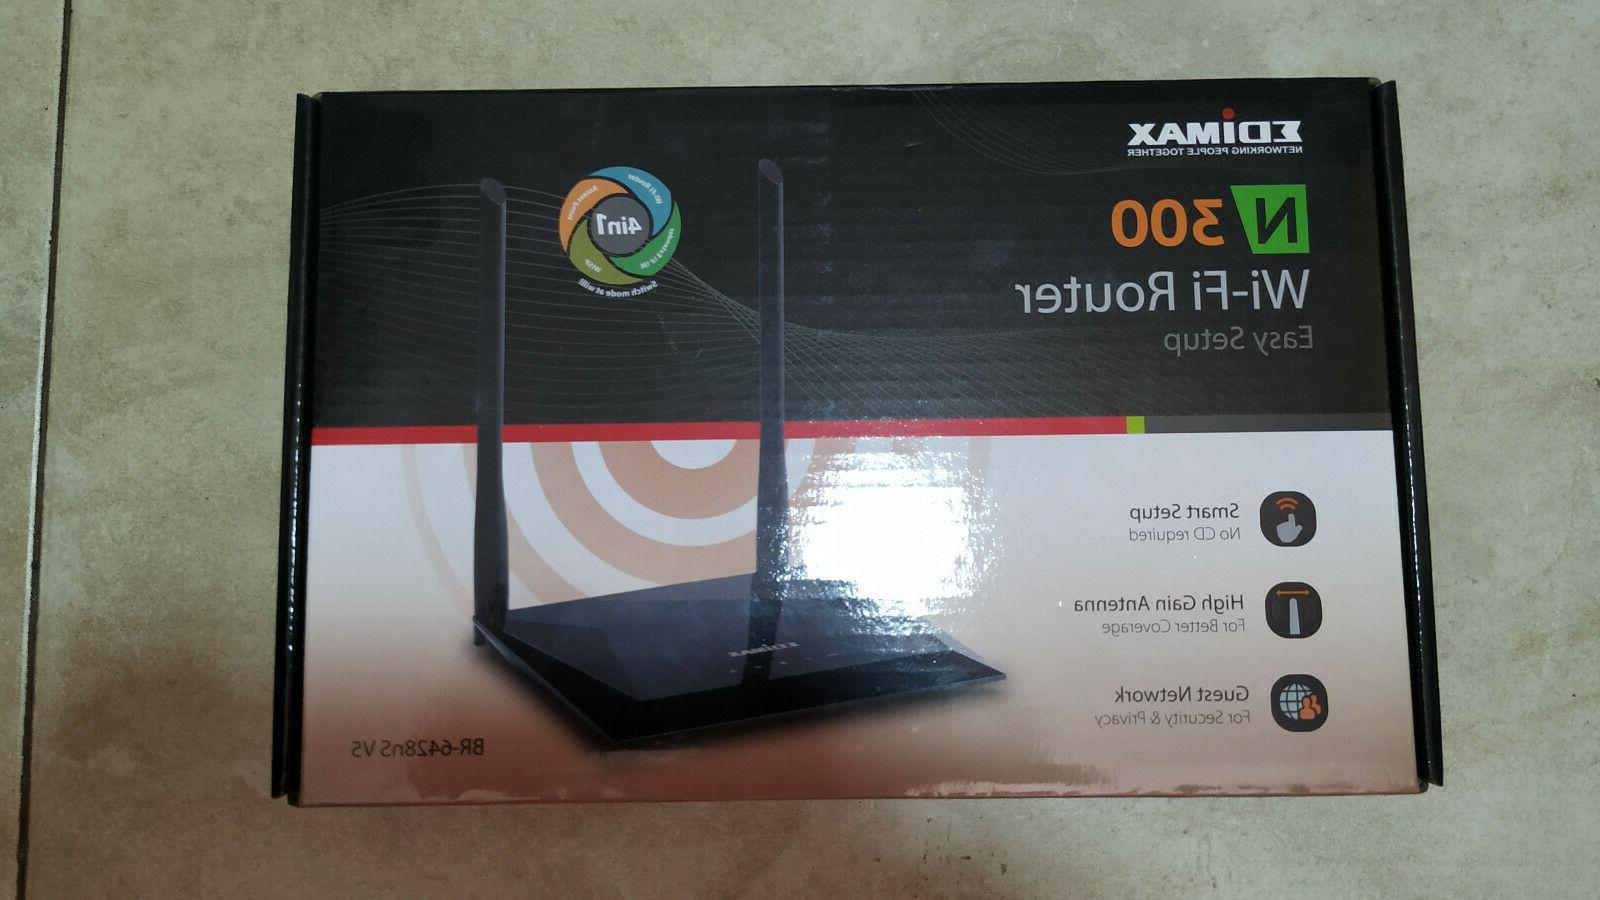 NEW BR-6428NS WiFi Wireless Router 4-Port Network